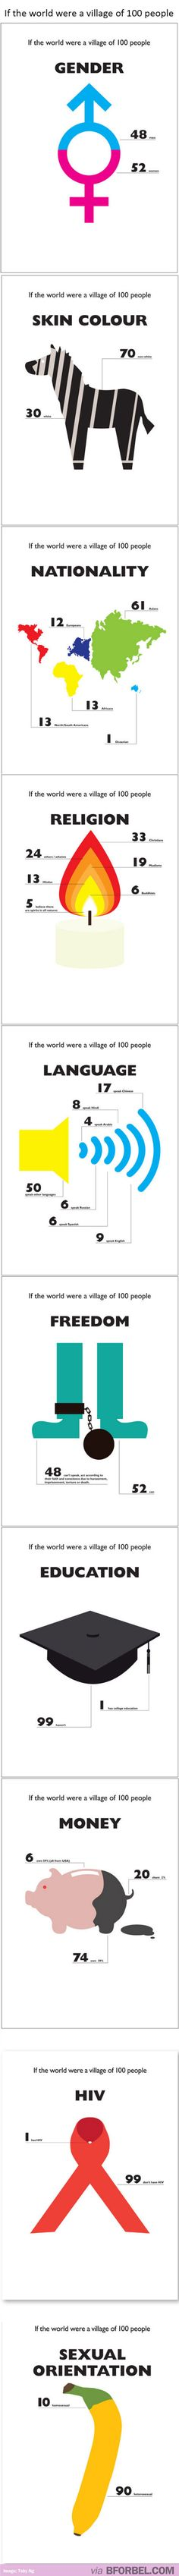 If the world was a village of 100 people, how many would be educated, women, homosexual etc.?